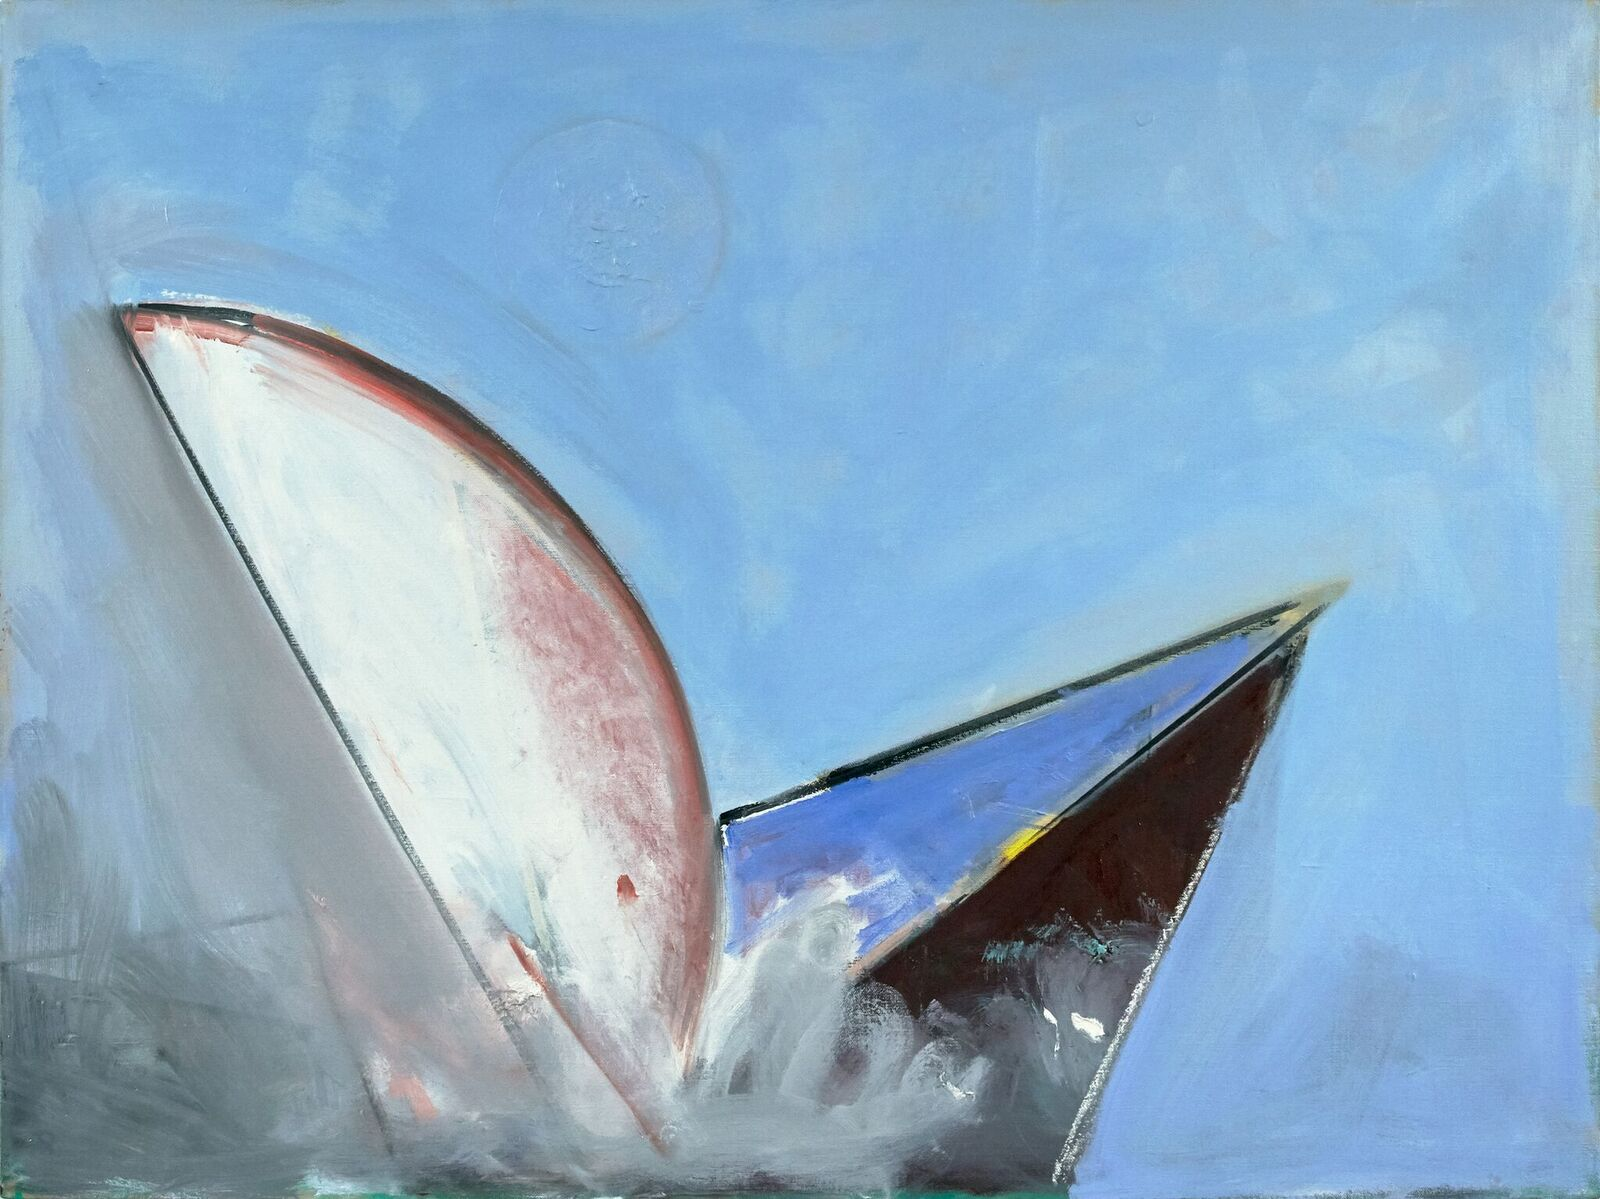 Paul Resika, Moby Dick, 2017, oil on canvas (© Paul Resika, courtesy of Steven Harvey Fine Art Projects)